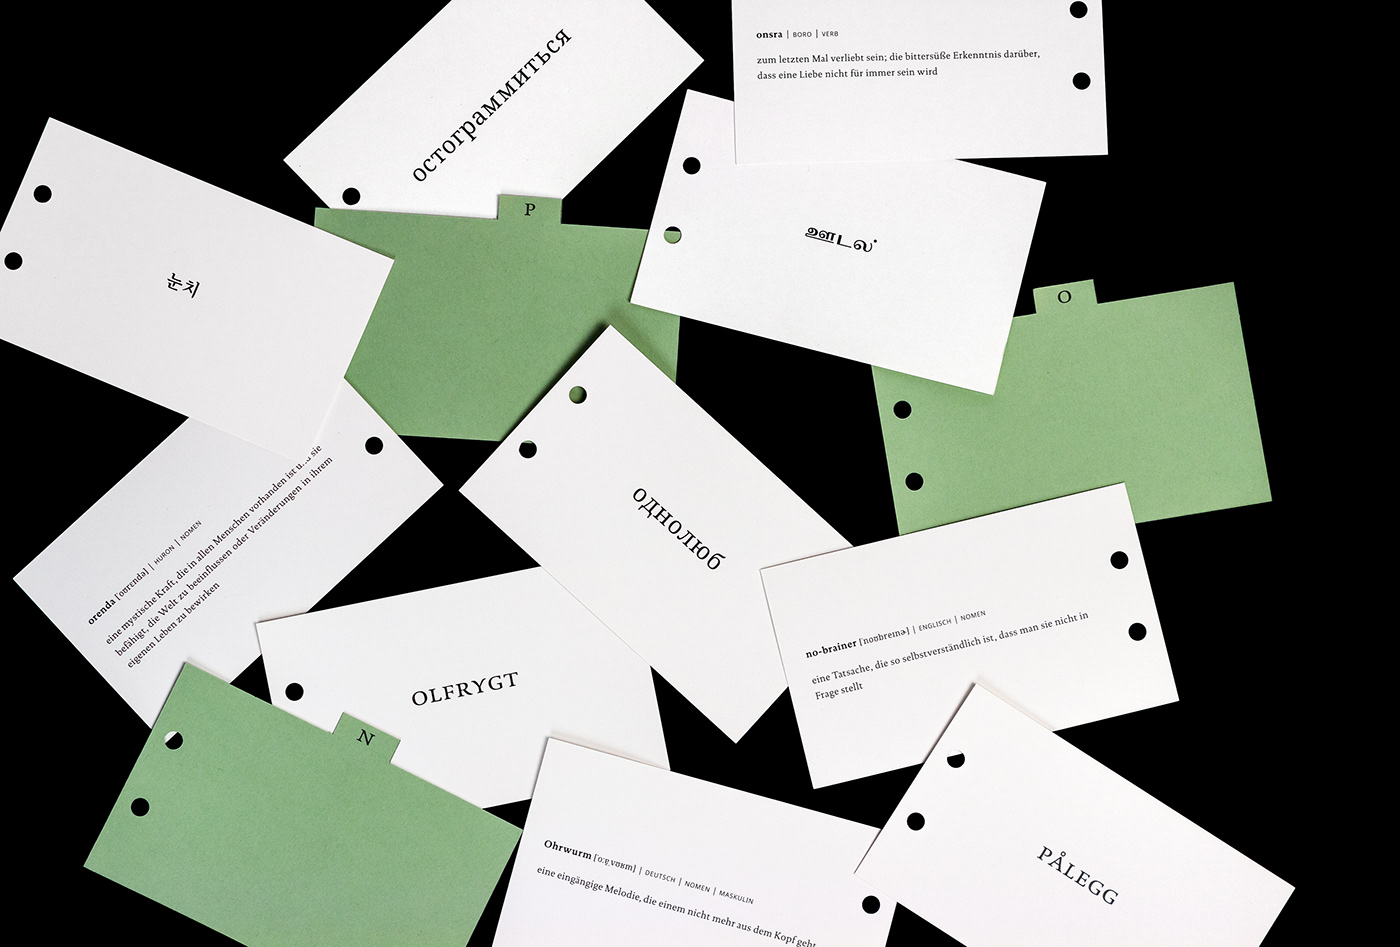 Cards about Untranslatability